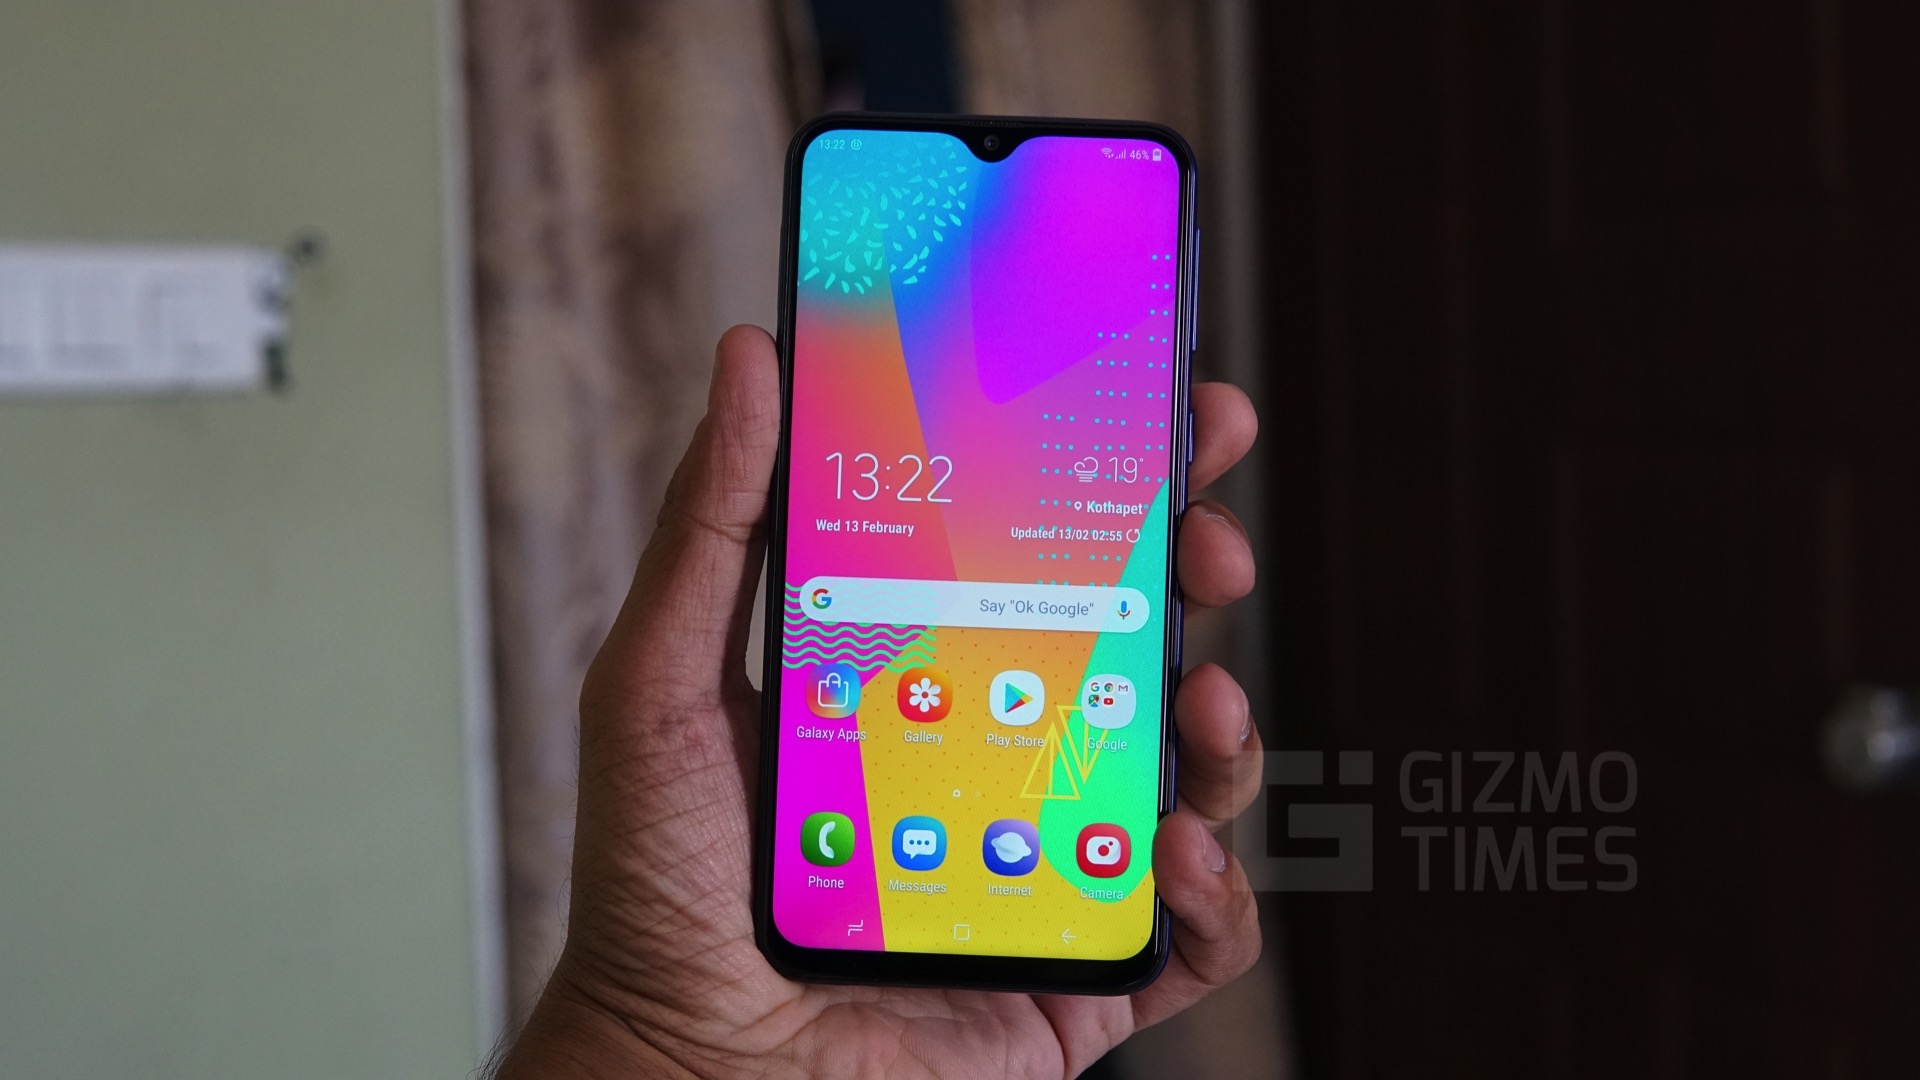 Samsung Galaxy M20 Review Decent Performance And Battery Samsung M20 Camera Review 320853 Hd Wallpaper Backgrounds Download